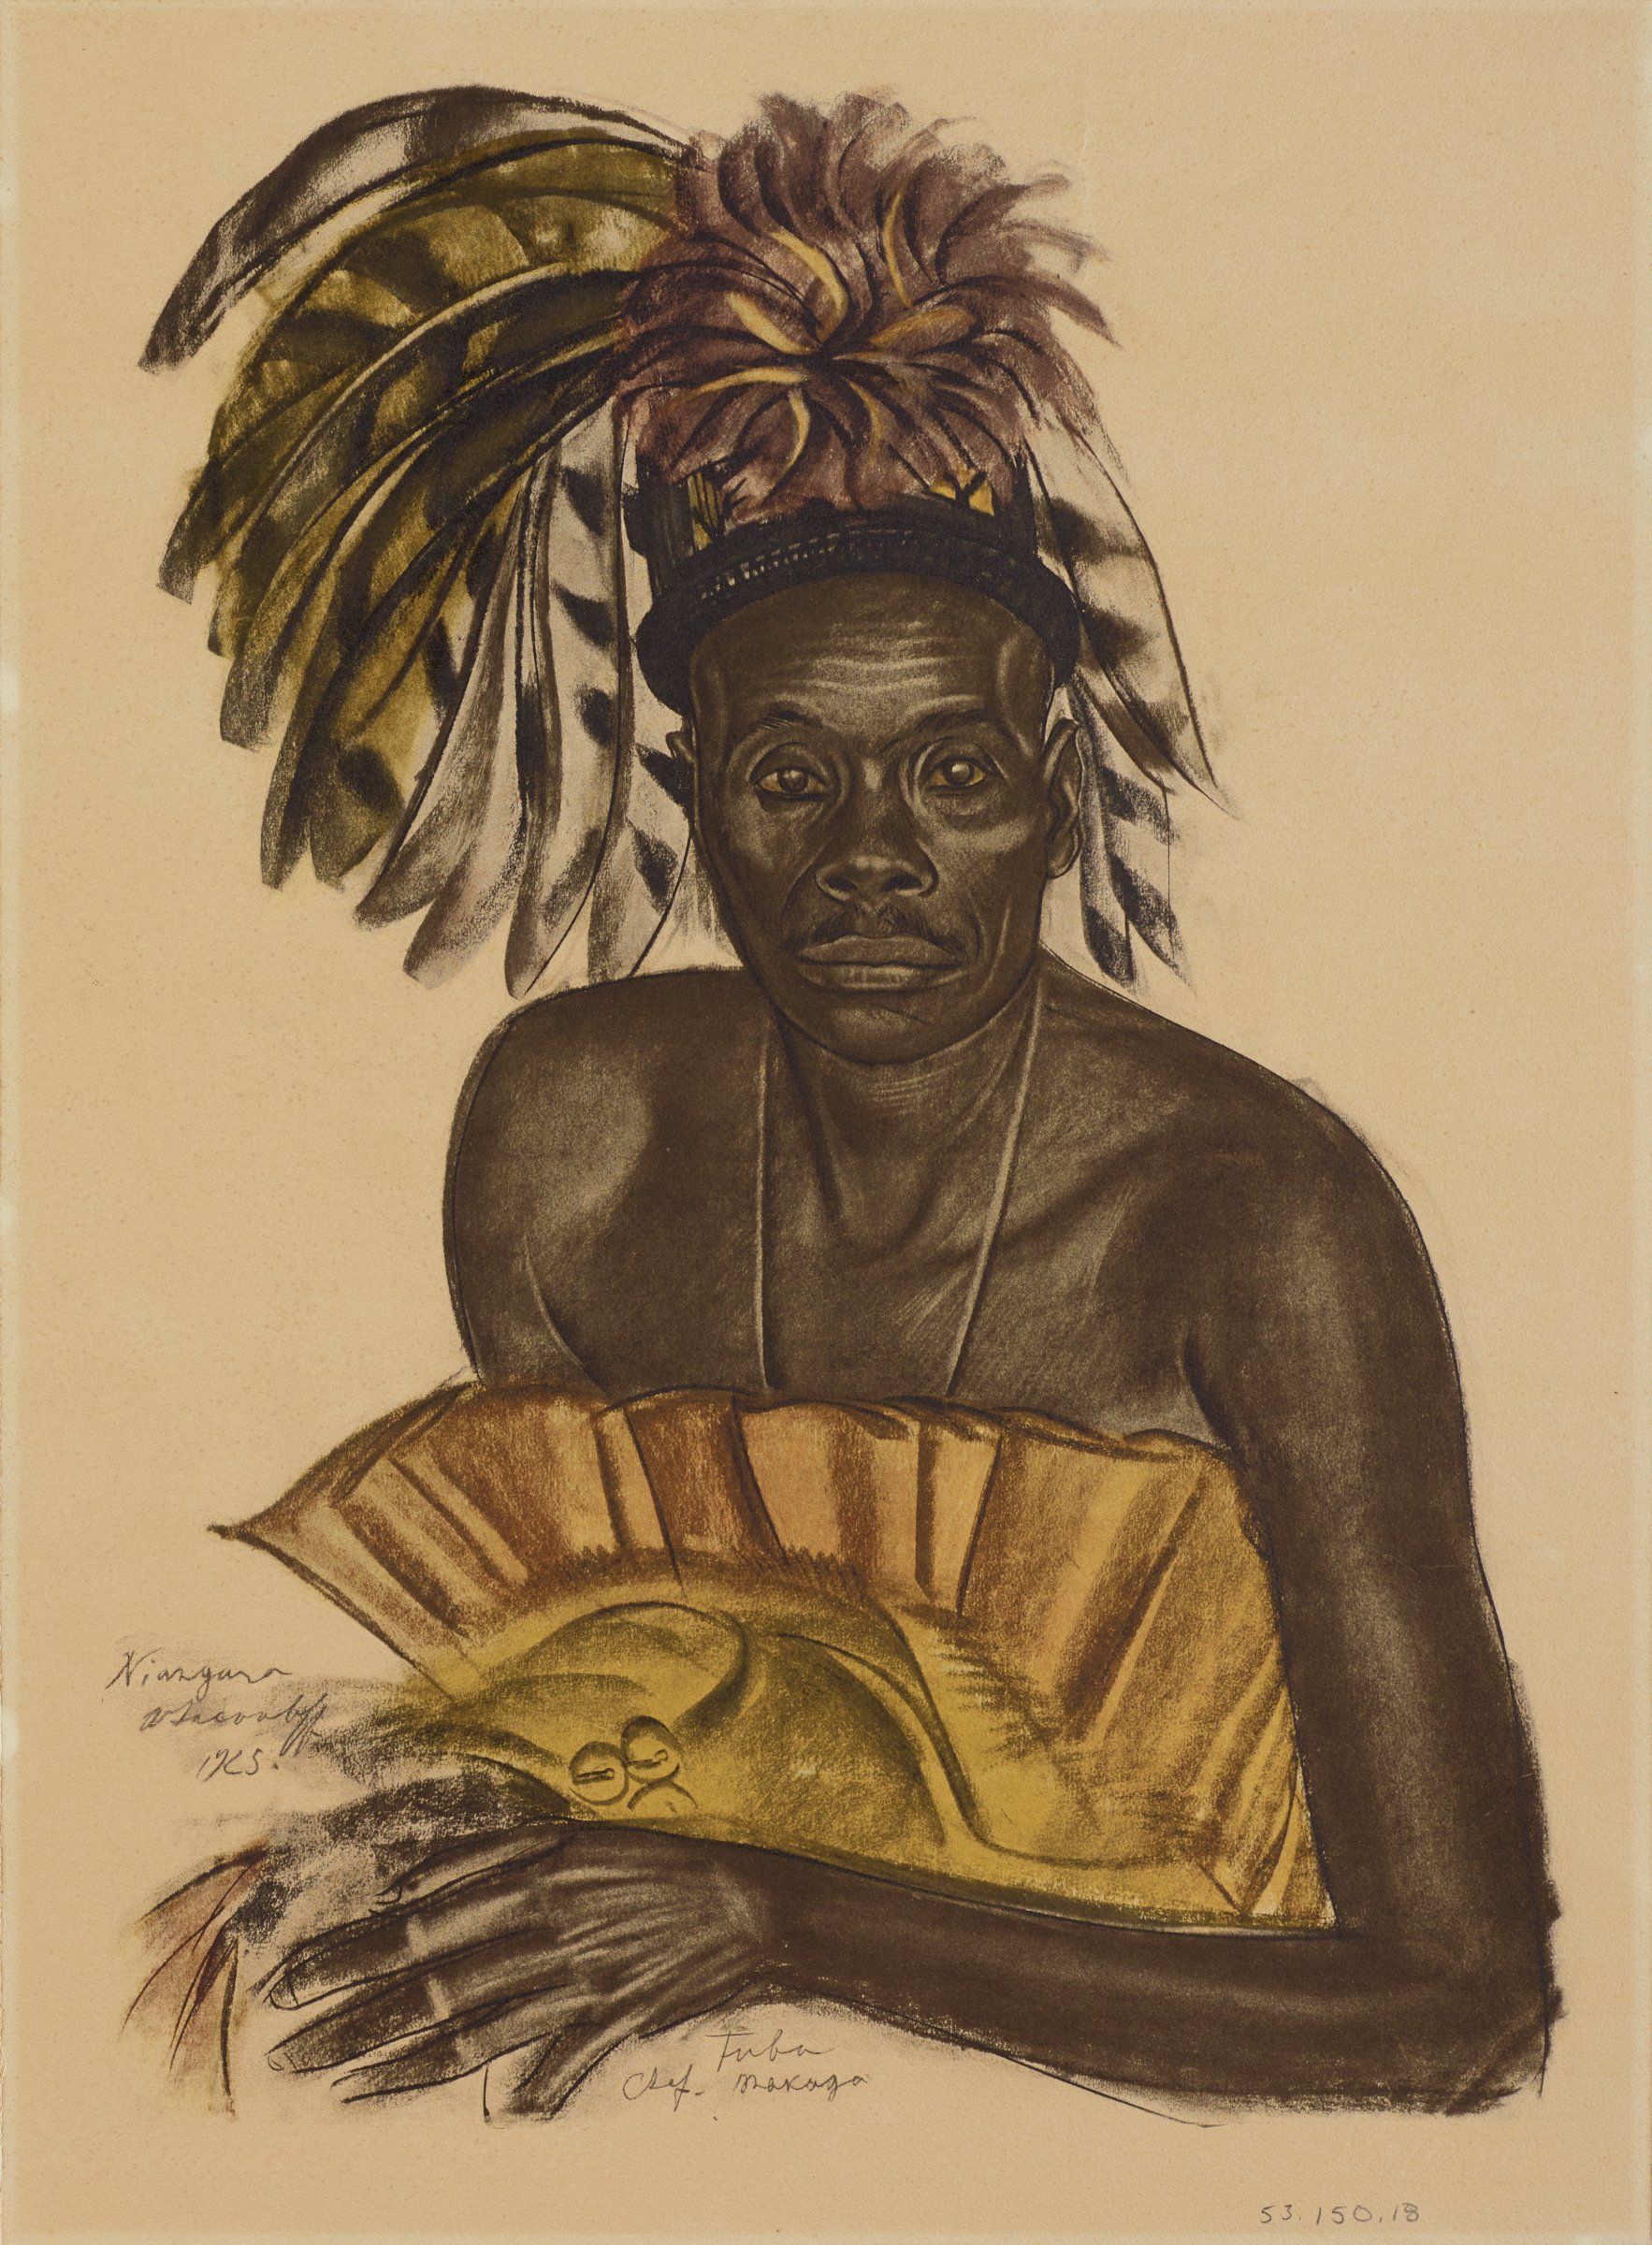 Half-length portrait of a male figure with feathered headwear. He leans slightly forward as he looks out at the viewer. This series is a product of Jacovleff's involvement in the Expédition Citroën Centre-Afrique.